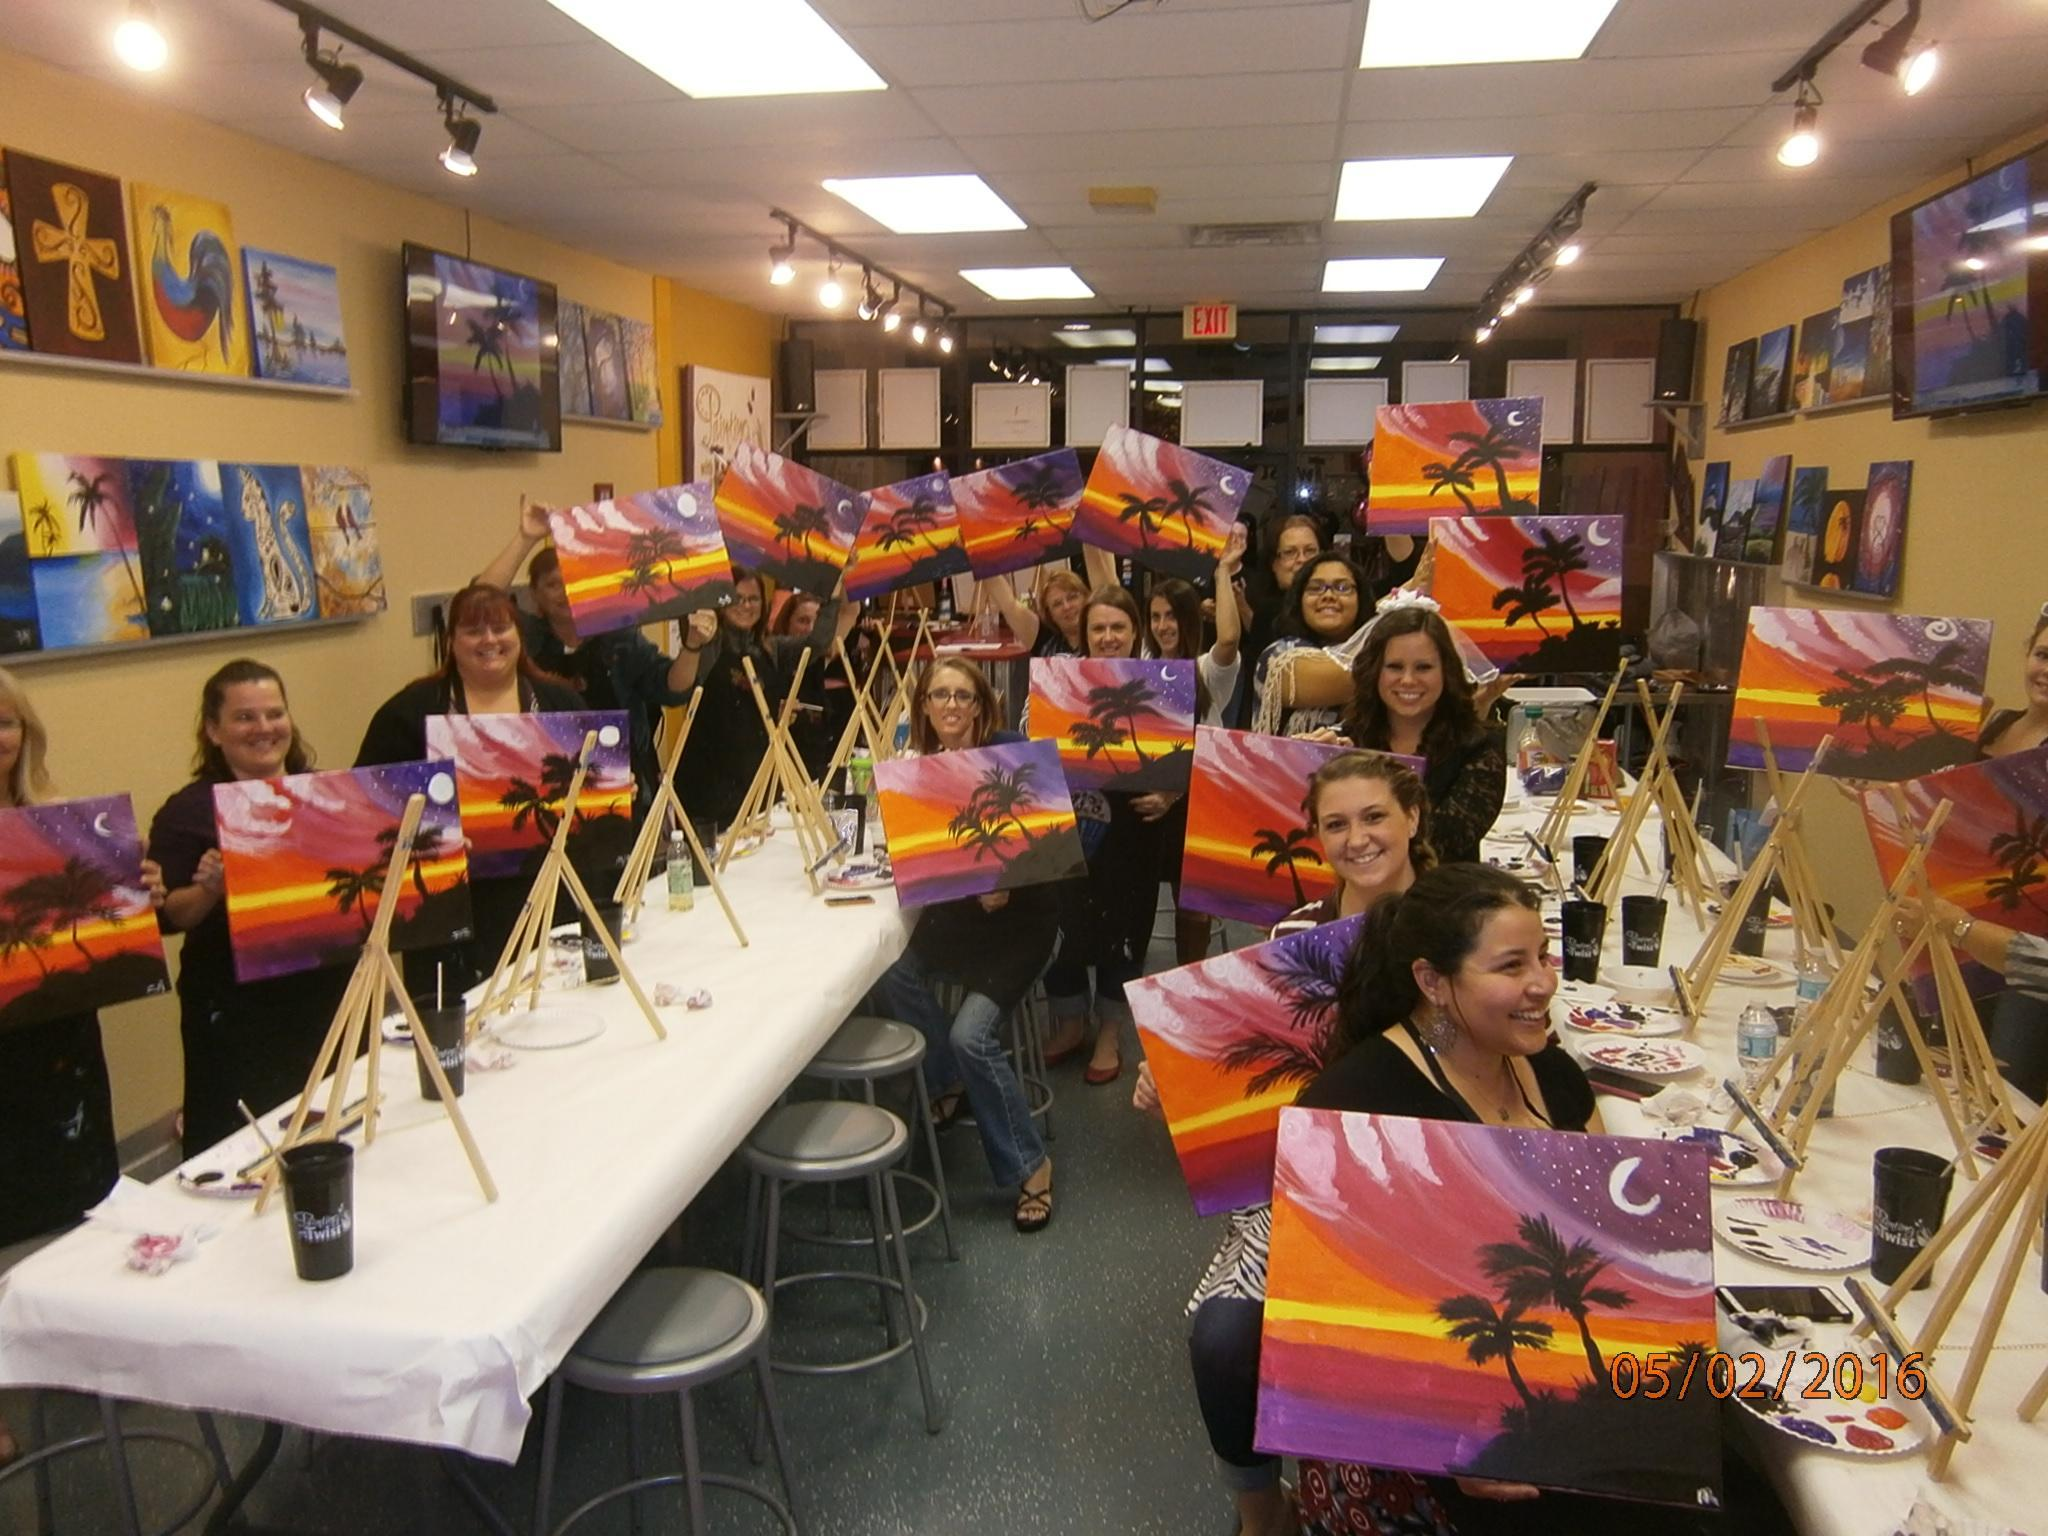 Painting with a twist port charlotte fl company page for Painting with a twist charlotte nc